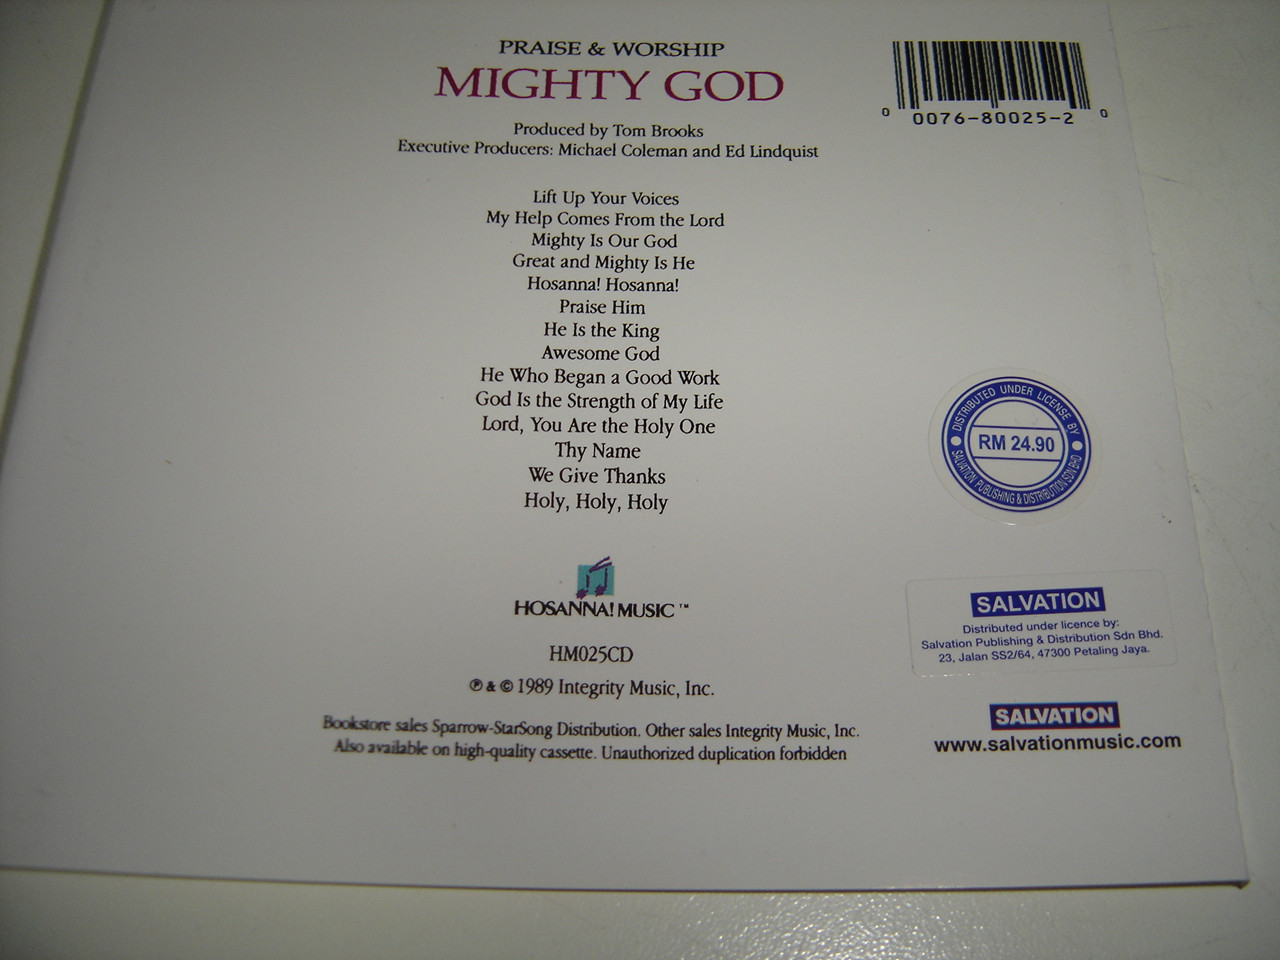 MIGHTY GOD / Praise & Worship Integrity Music 1989 / Anointed and Powerful  Worship Experience With Worship Leader J  Daniel Smith